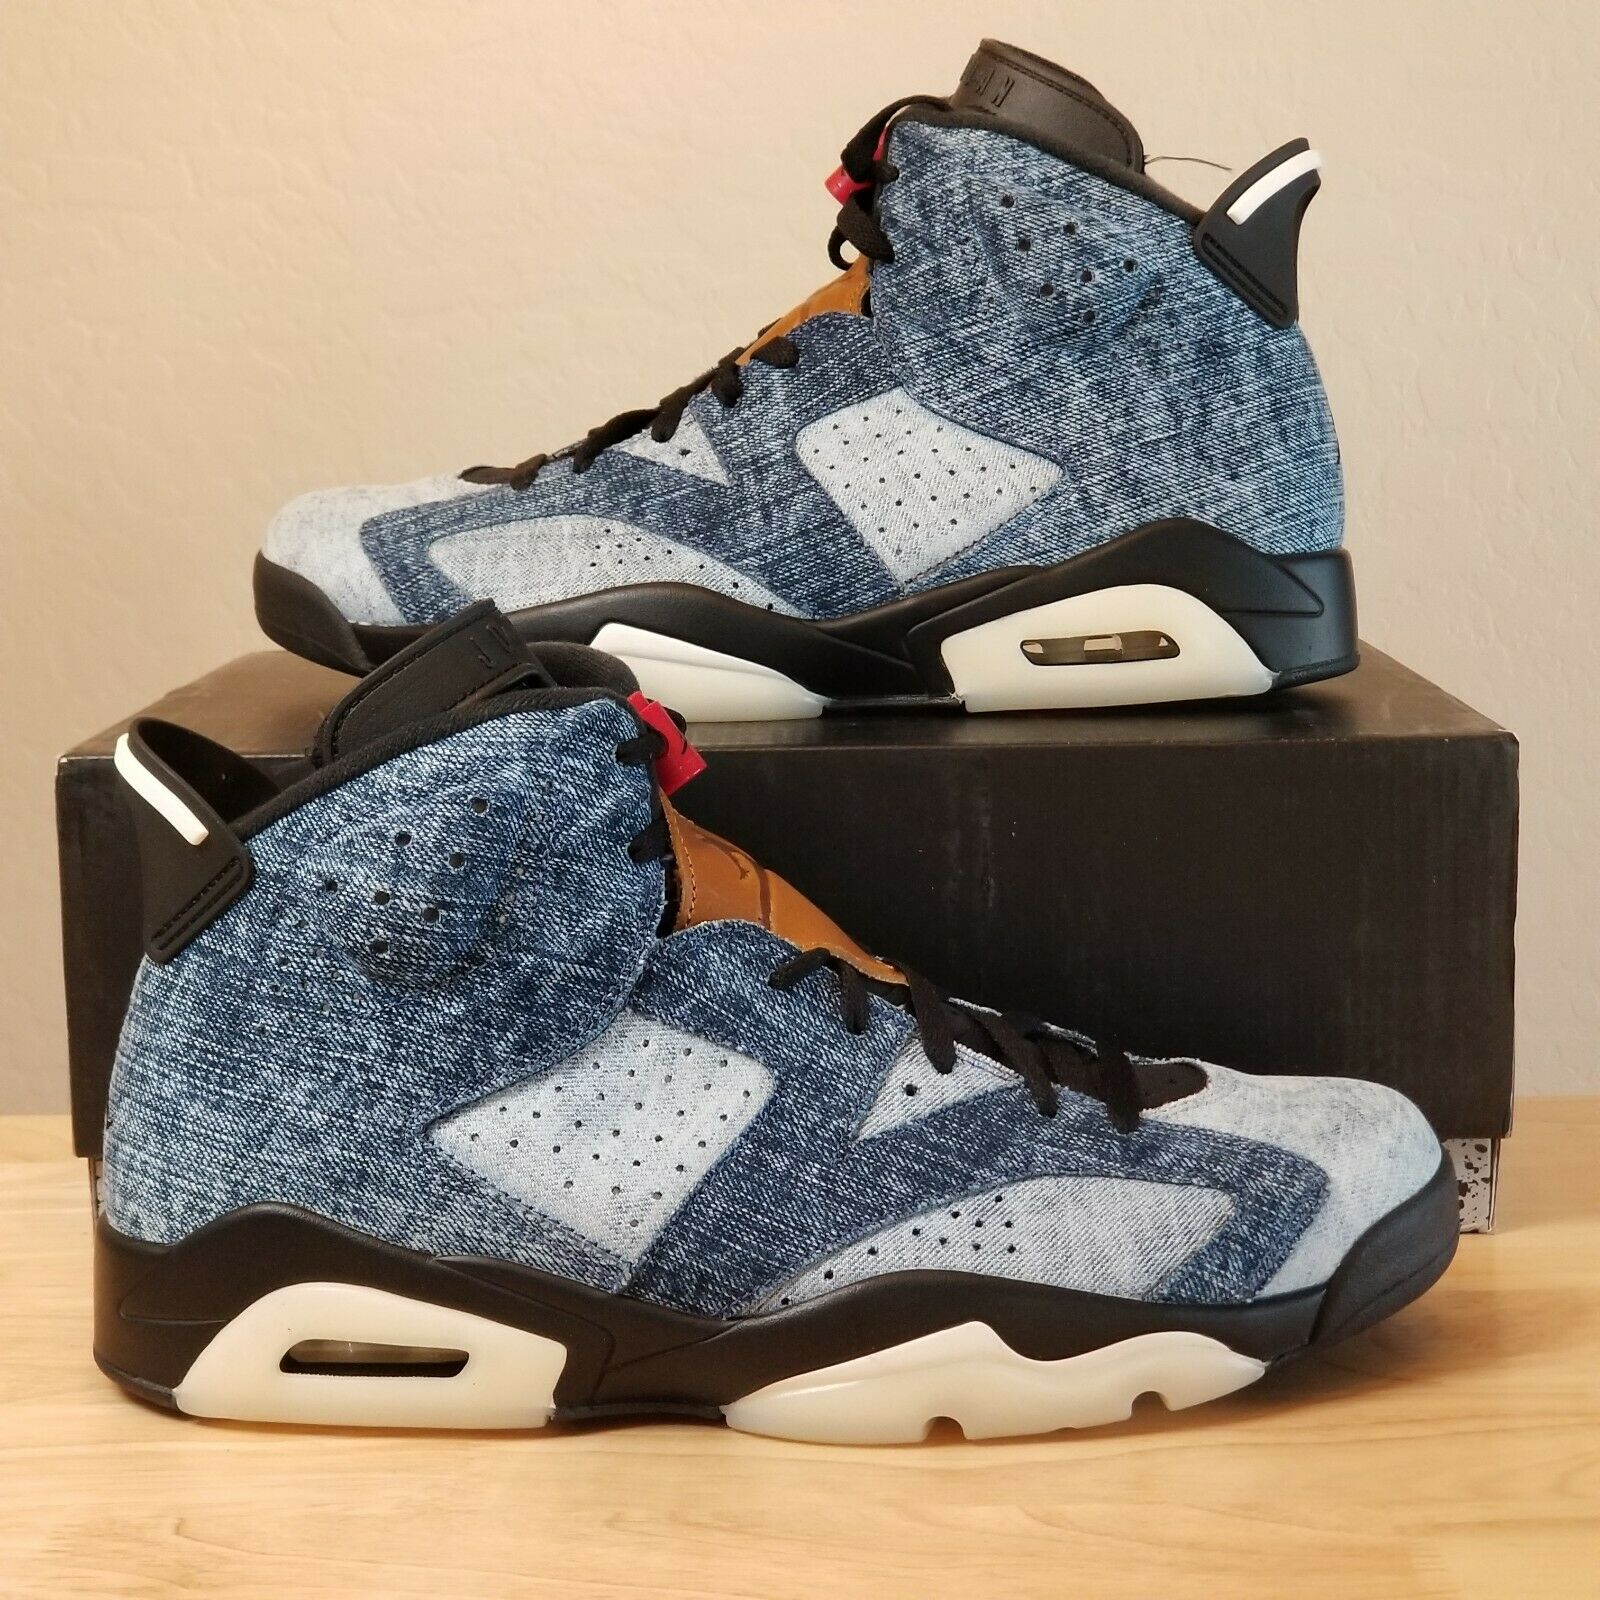 Jordan 6 Retro Washed Denim